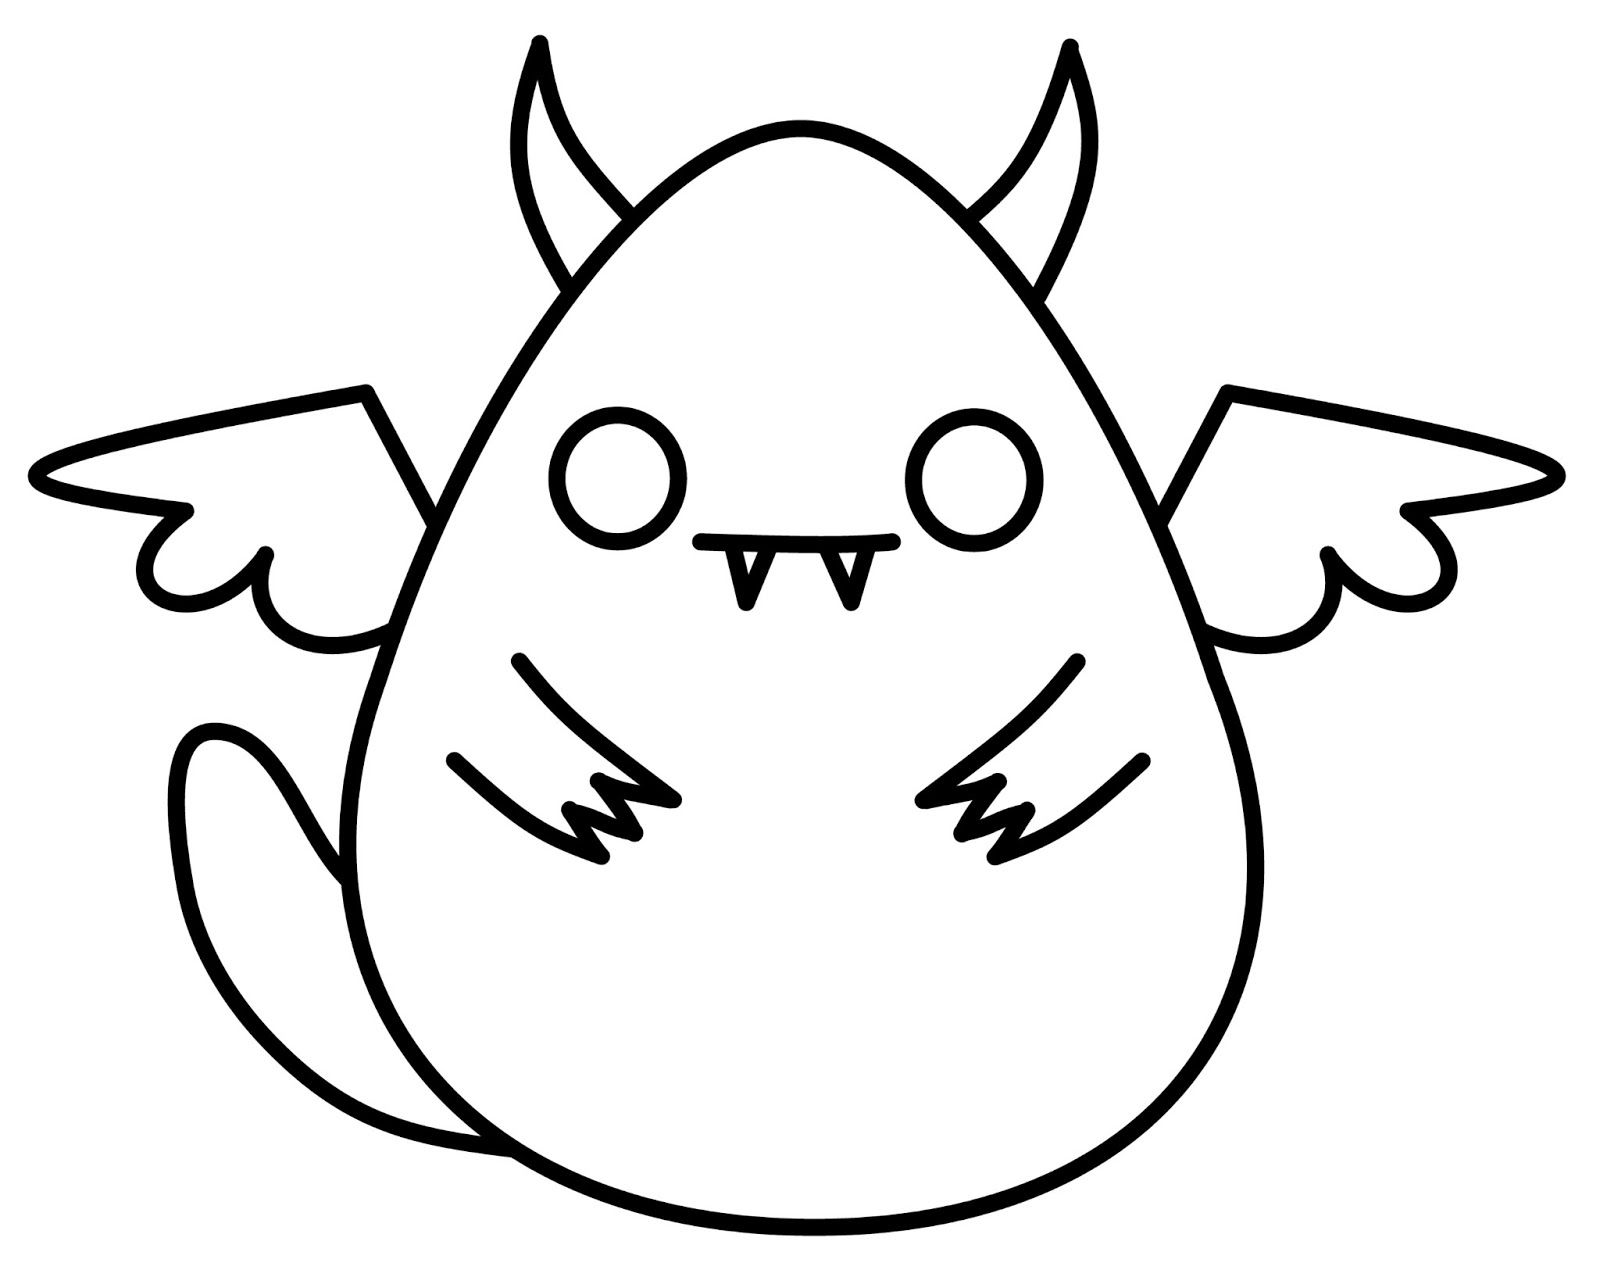 Cute N Kawaii How To Draw A Kawaii Monster Anime Eyes Easy